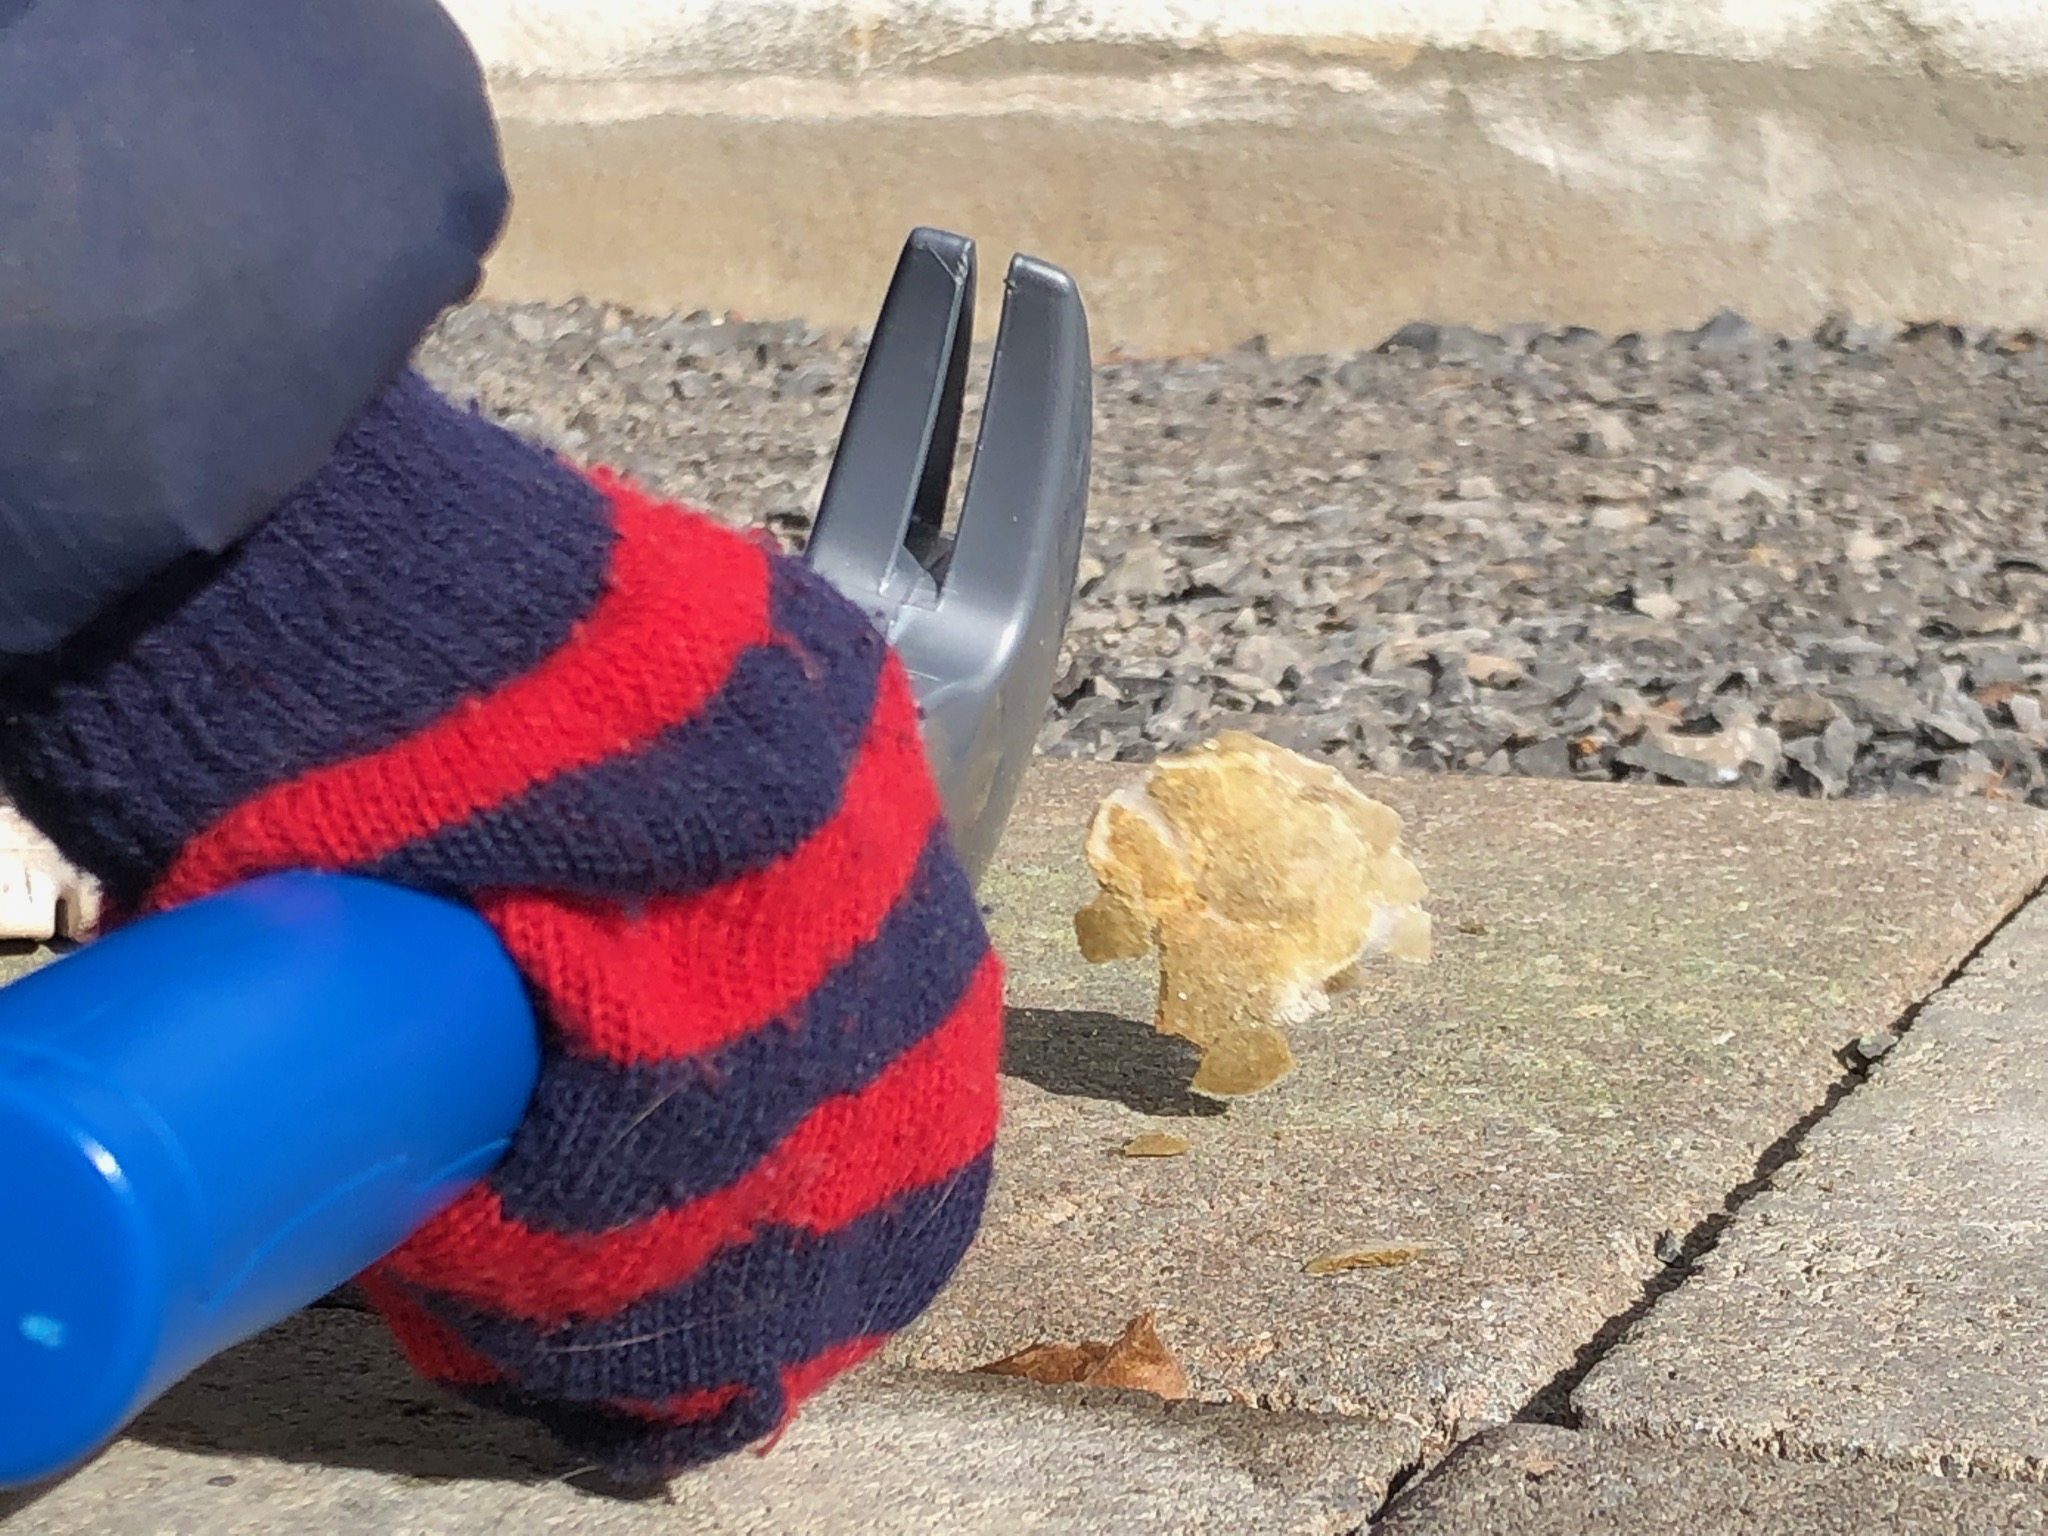 A child's hand wearing a striped red and navy gloves holds a blue and grey plastic hammer. A fabricated moon rock is seen next to it, in motion, after being smashed